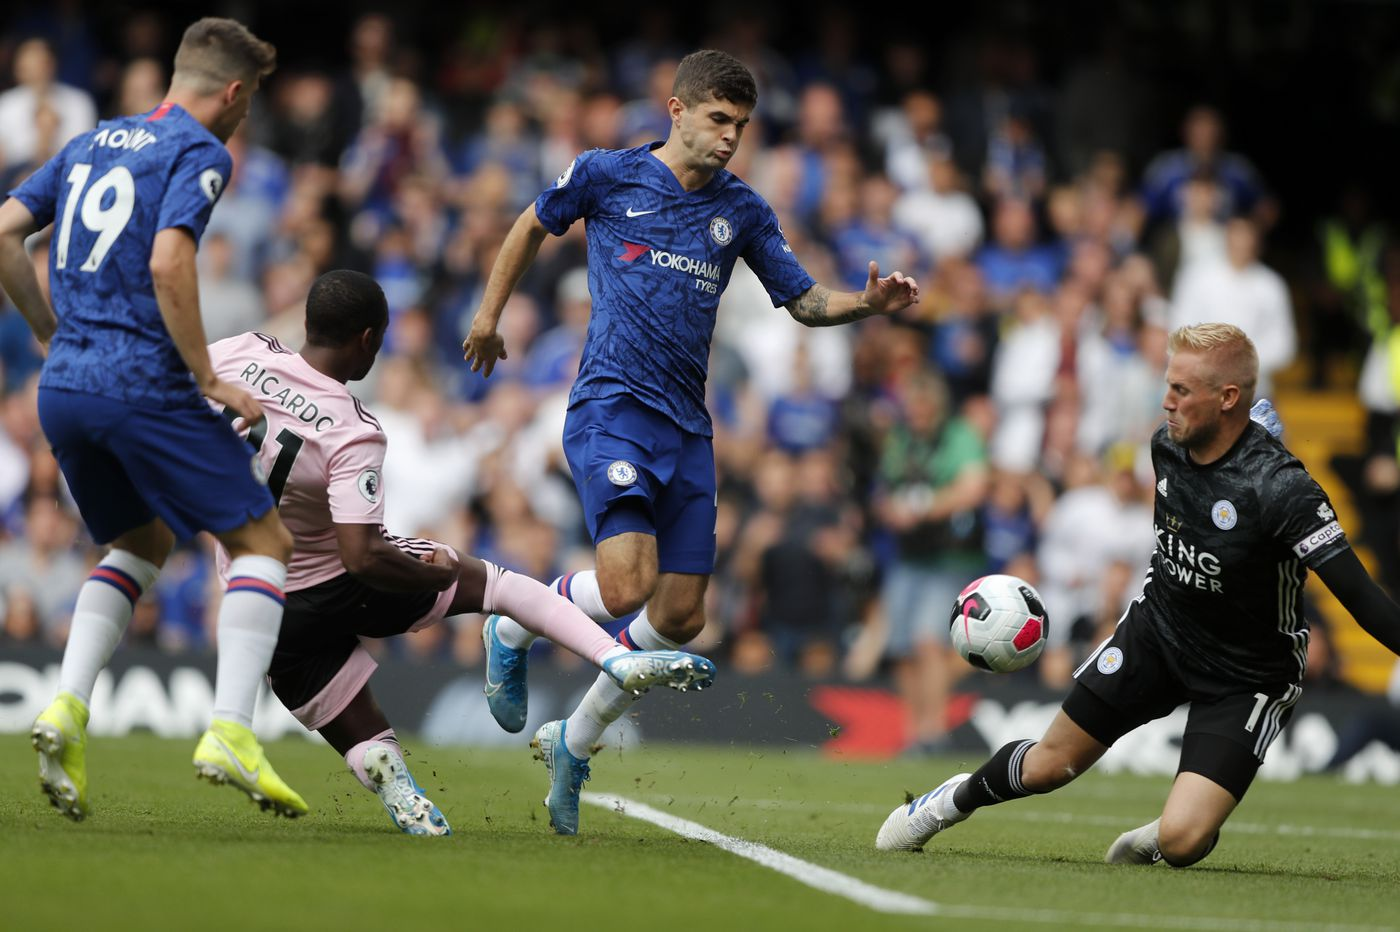 Christian Pulisic confident in form despite Chelsea benching